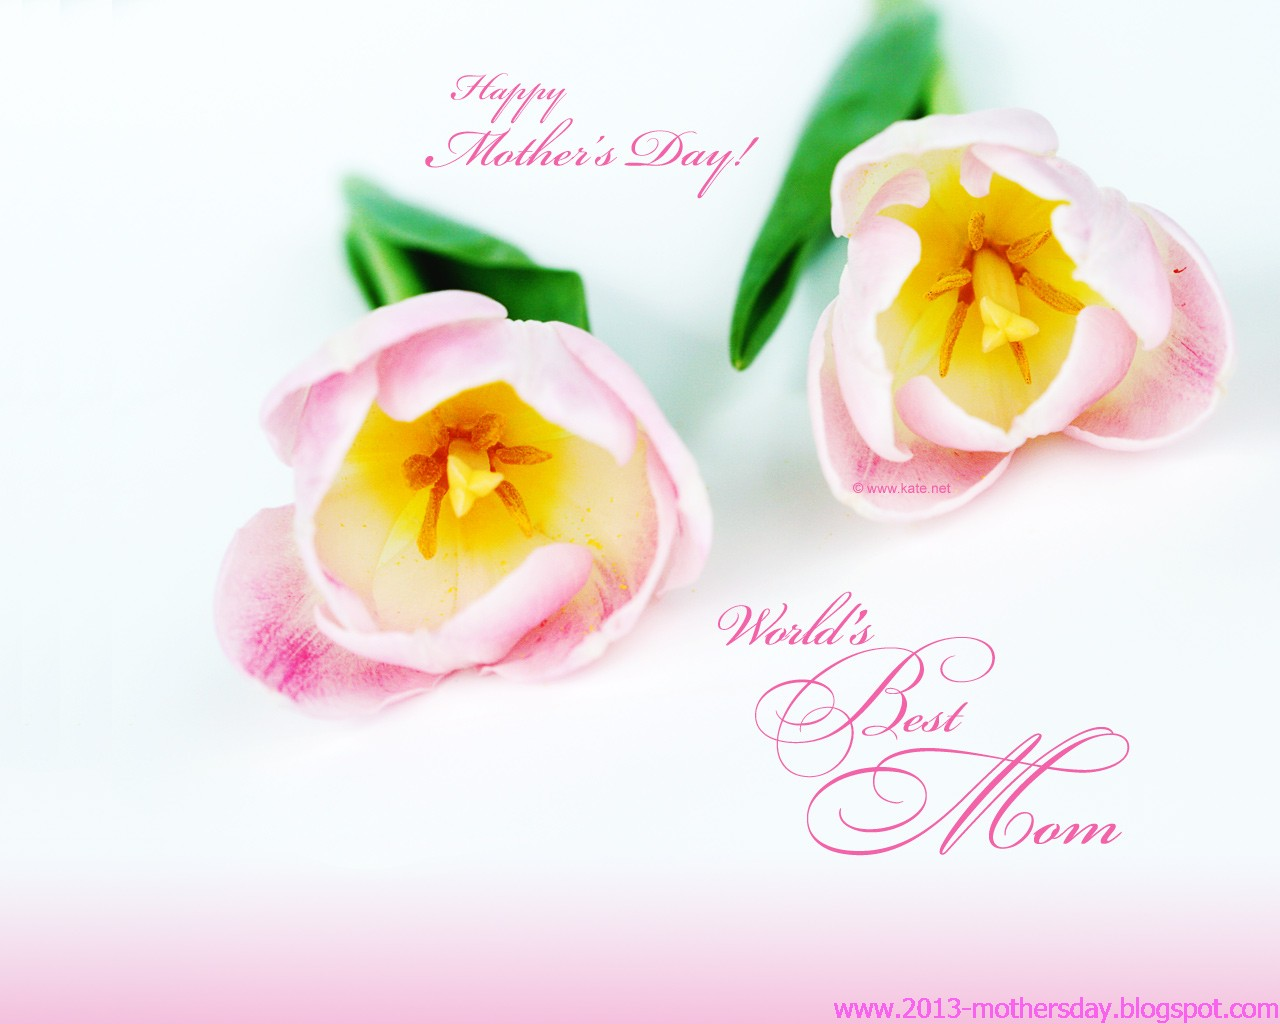 Mothers Day 2013 new desktop HD Wallpaper 1280x1024